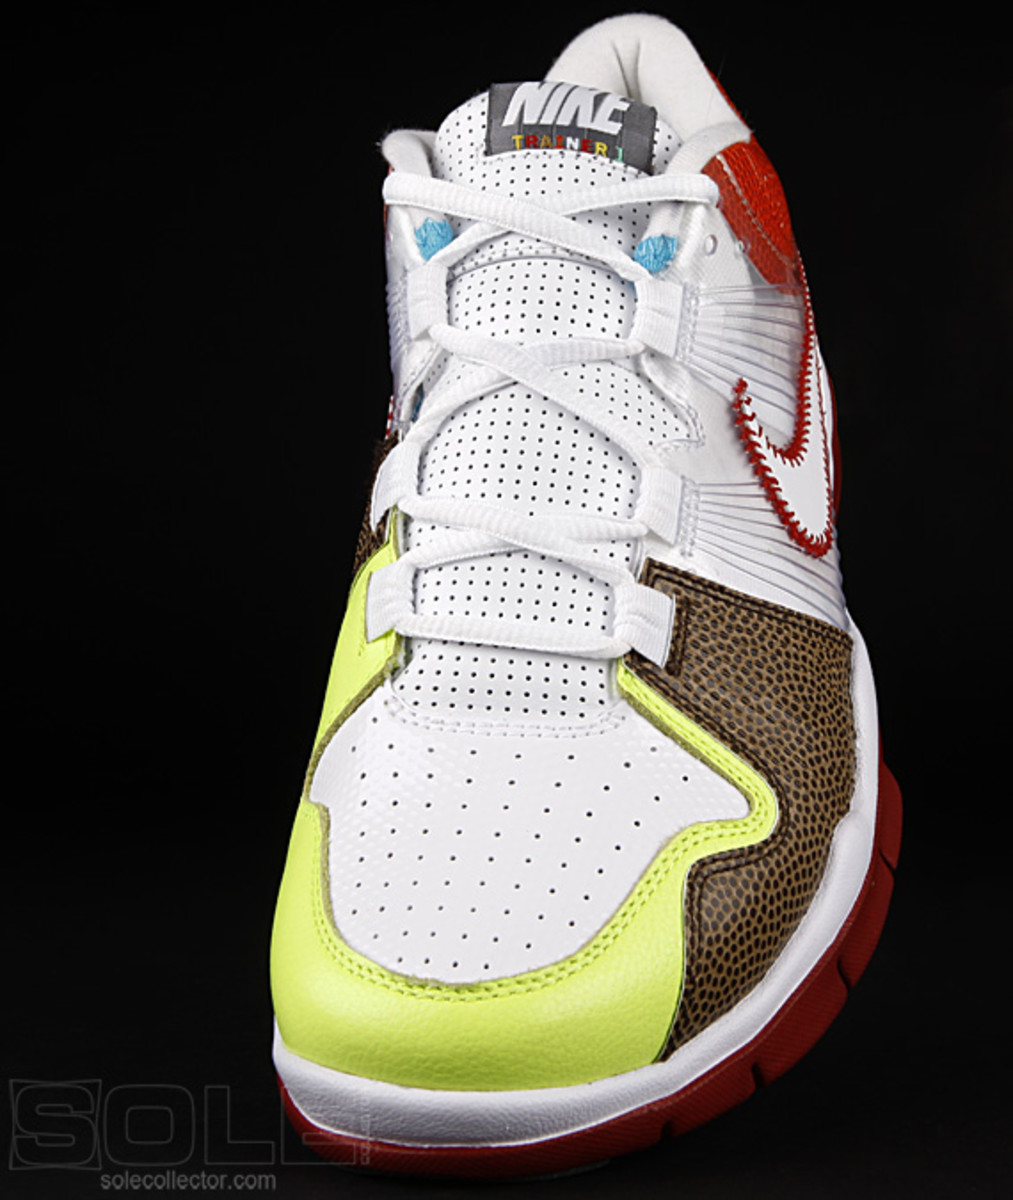 nike-trainer-1-what-the-all-sport-02